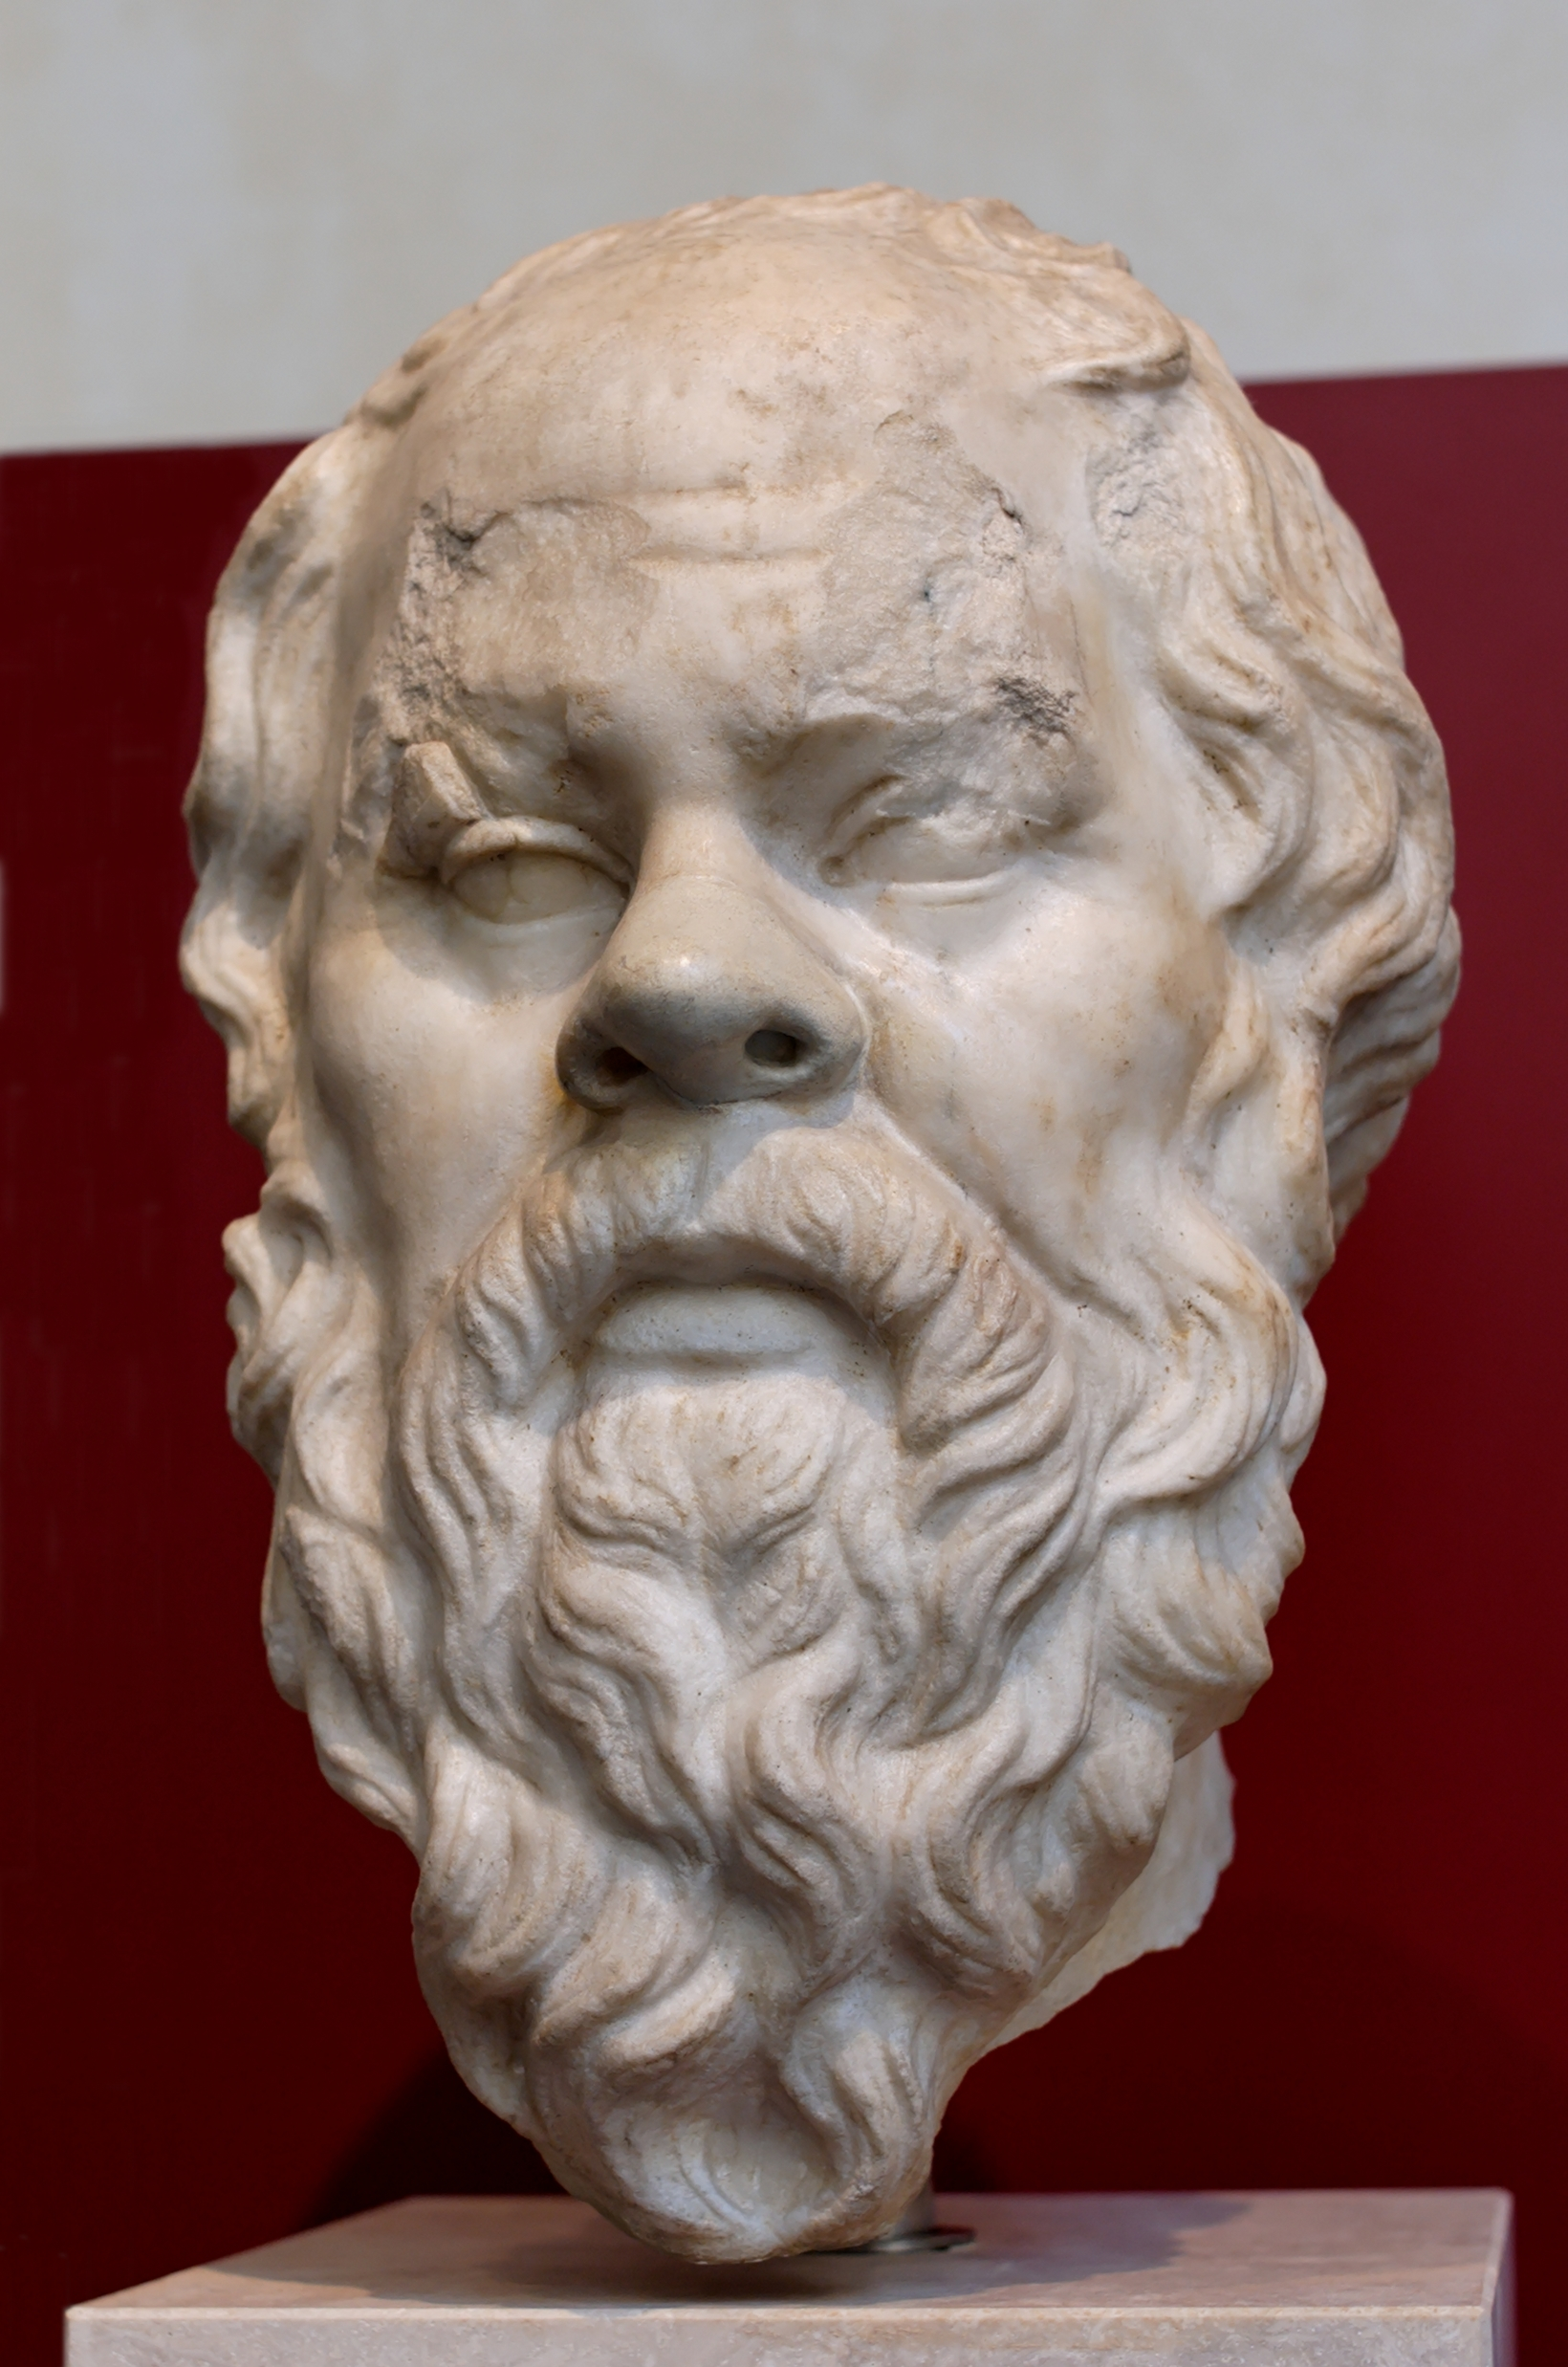 was socrates a sophist essay Socrates and the sophists (plato's dialogues) in chapter 4, the sophist: protagoras, soccio does an excellent job discussing a group of teachers and thinkers known collectively as sophists, and the social environment in which they flourished for a time.